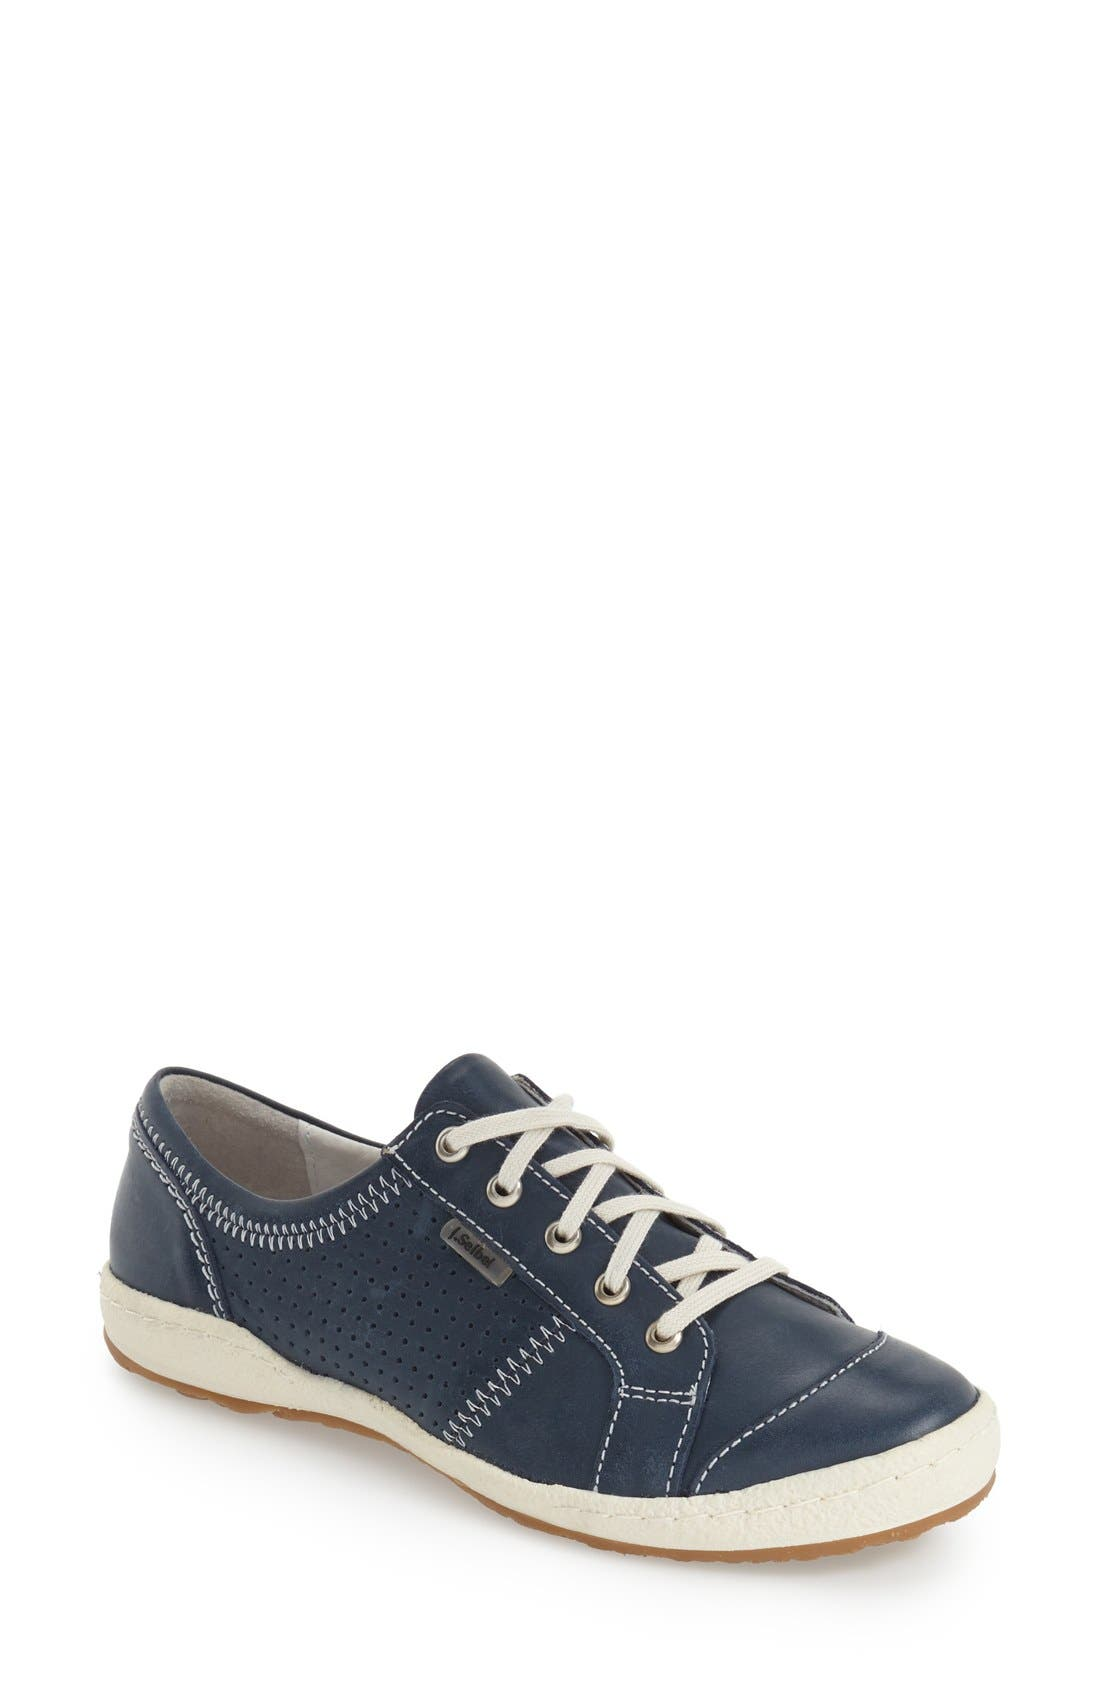 Alternate Image 1 Selected - Josef Seibel 'Caspian' Sneaker